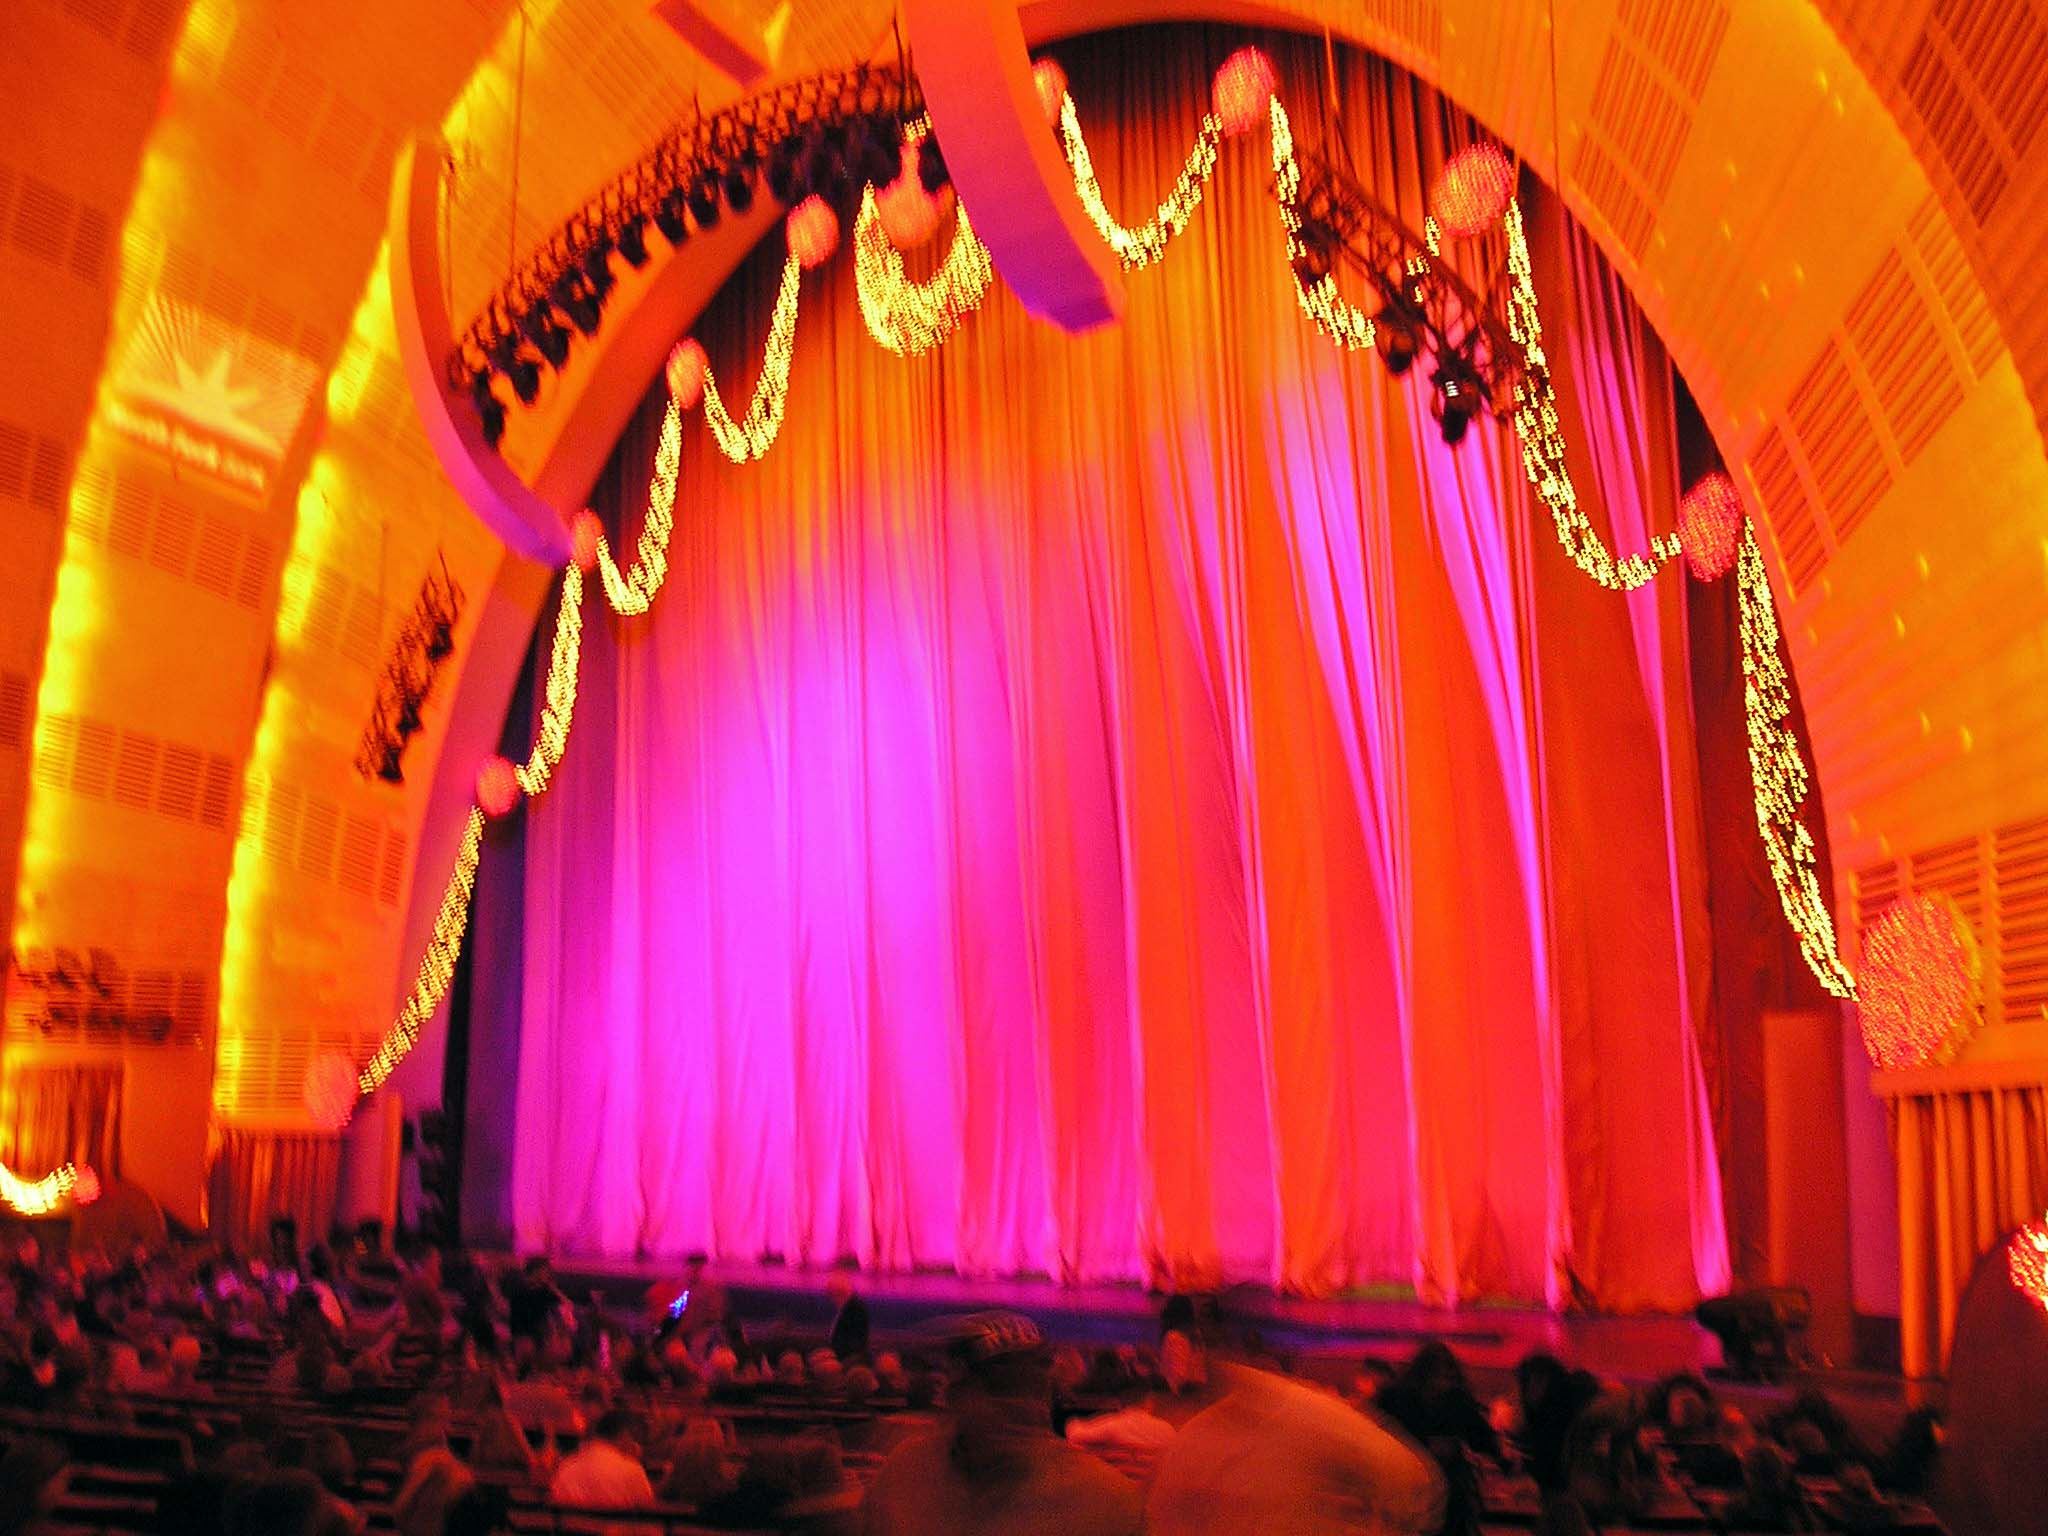 Description radio city music hall new york